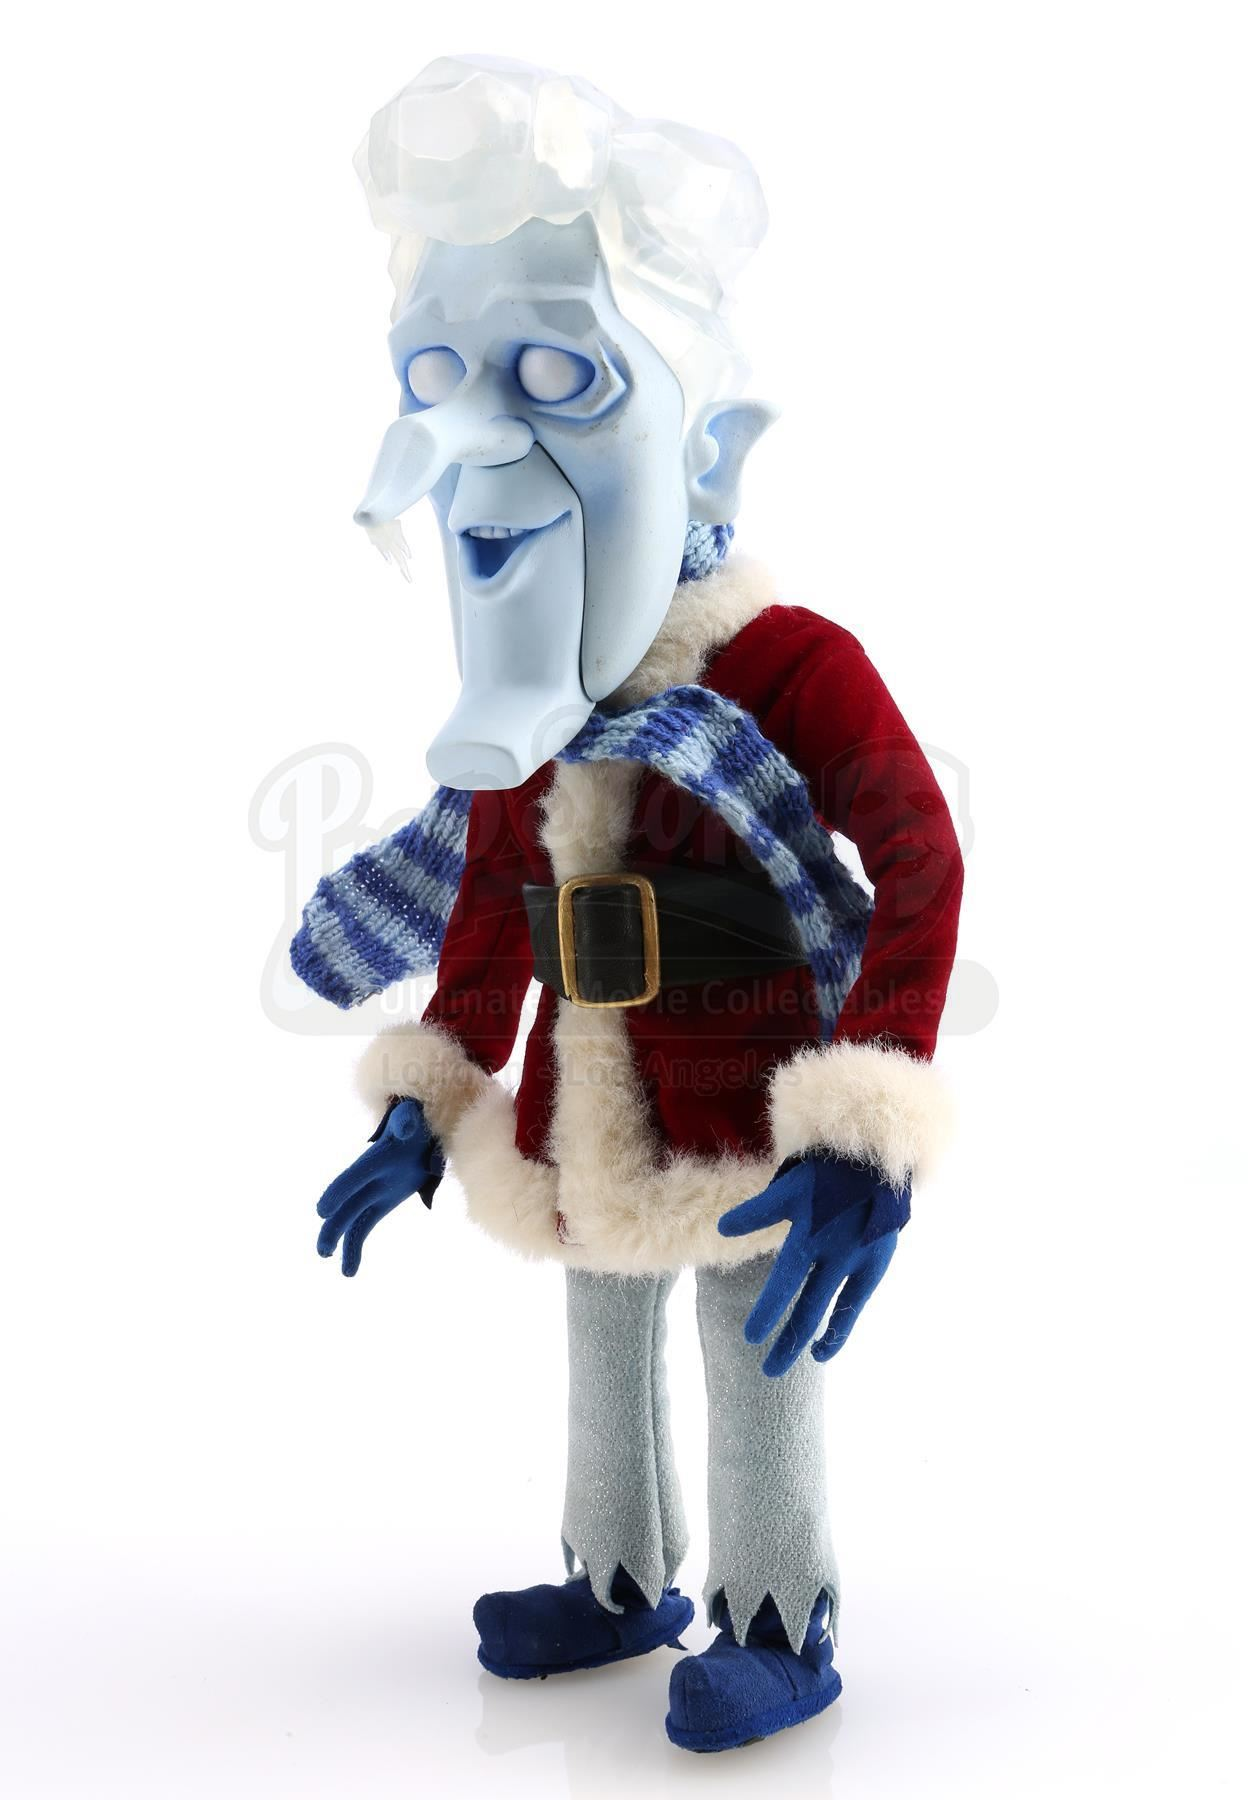 A Miser Brothers Christmas.Snow Miser S Stop Motion Puppet With Lip Kit Of Mouths A Miser Brothers Christmas 2008